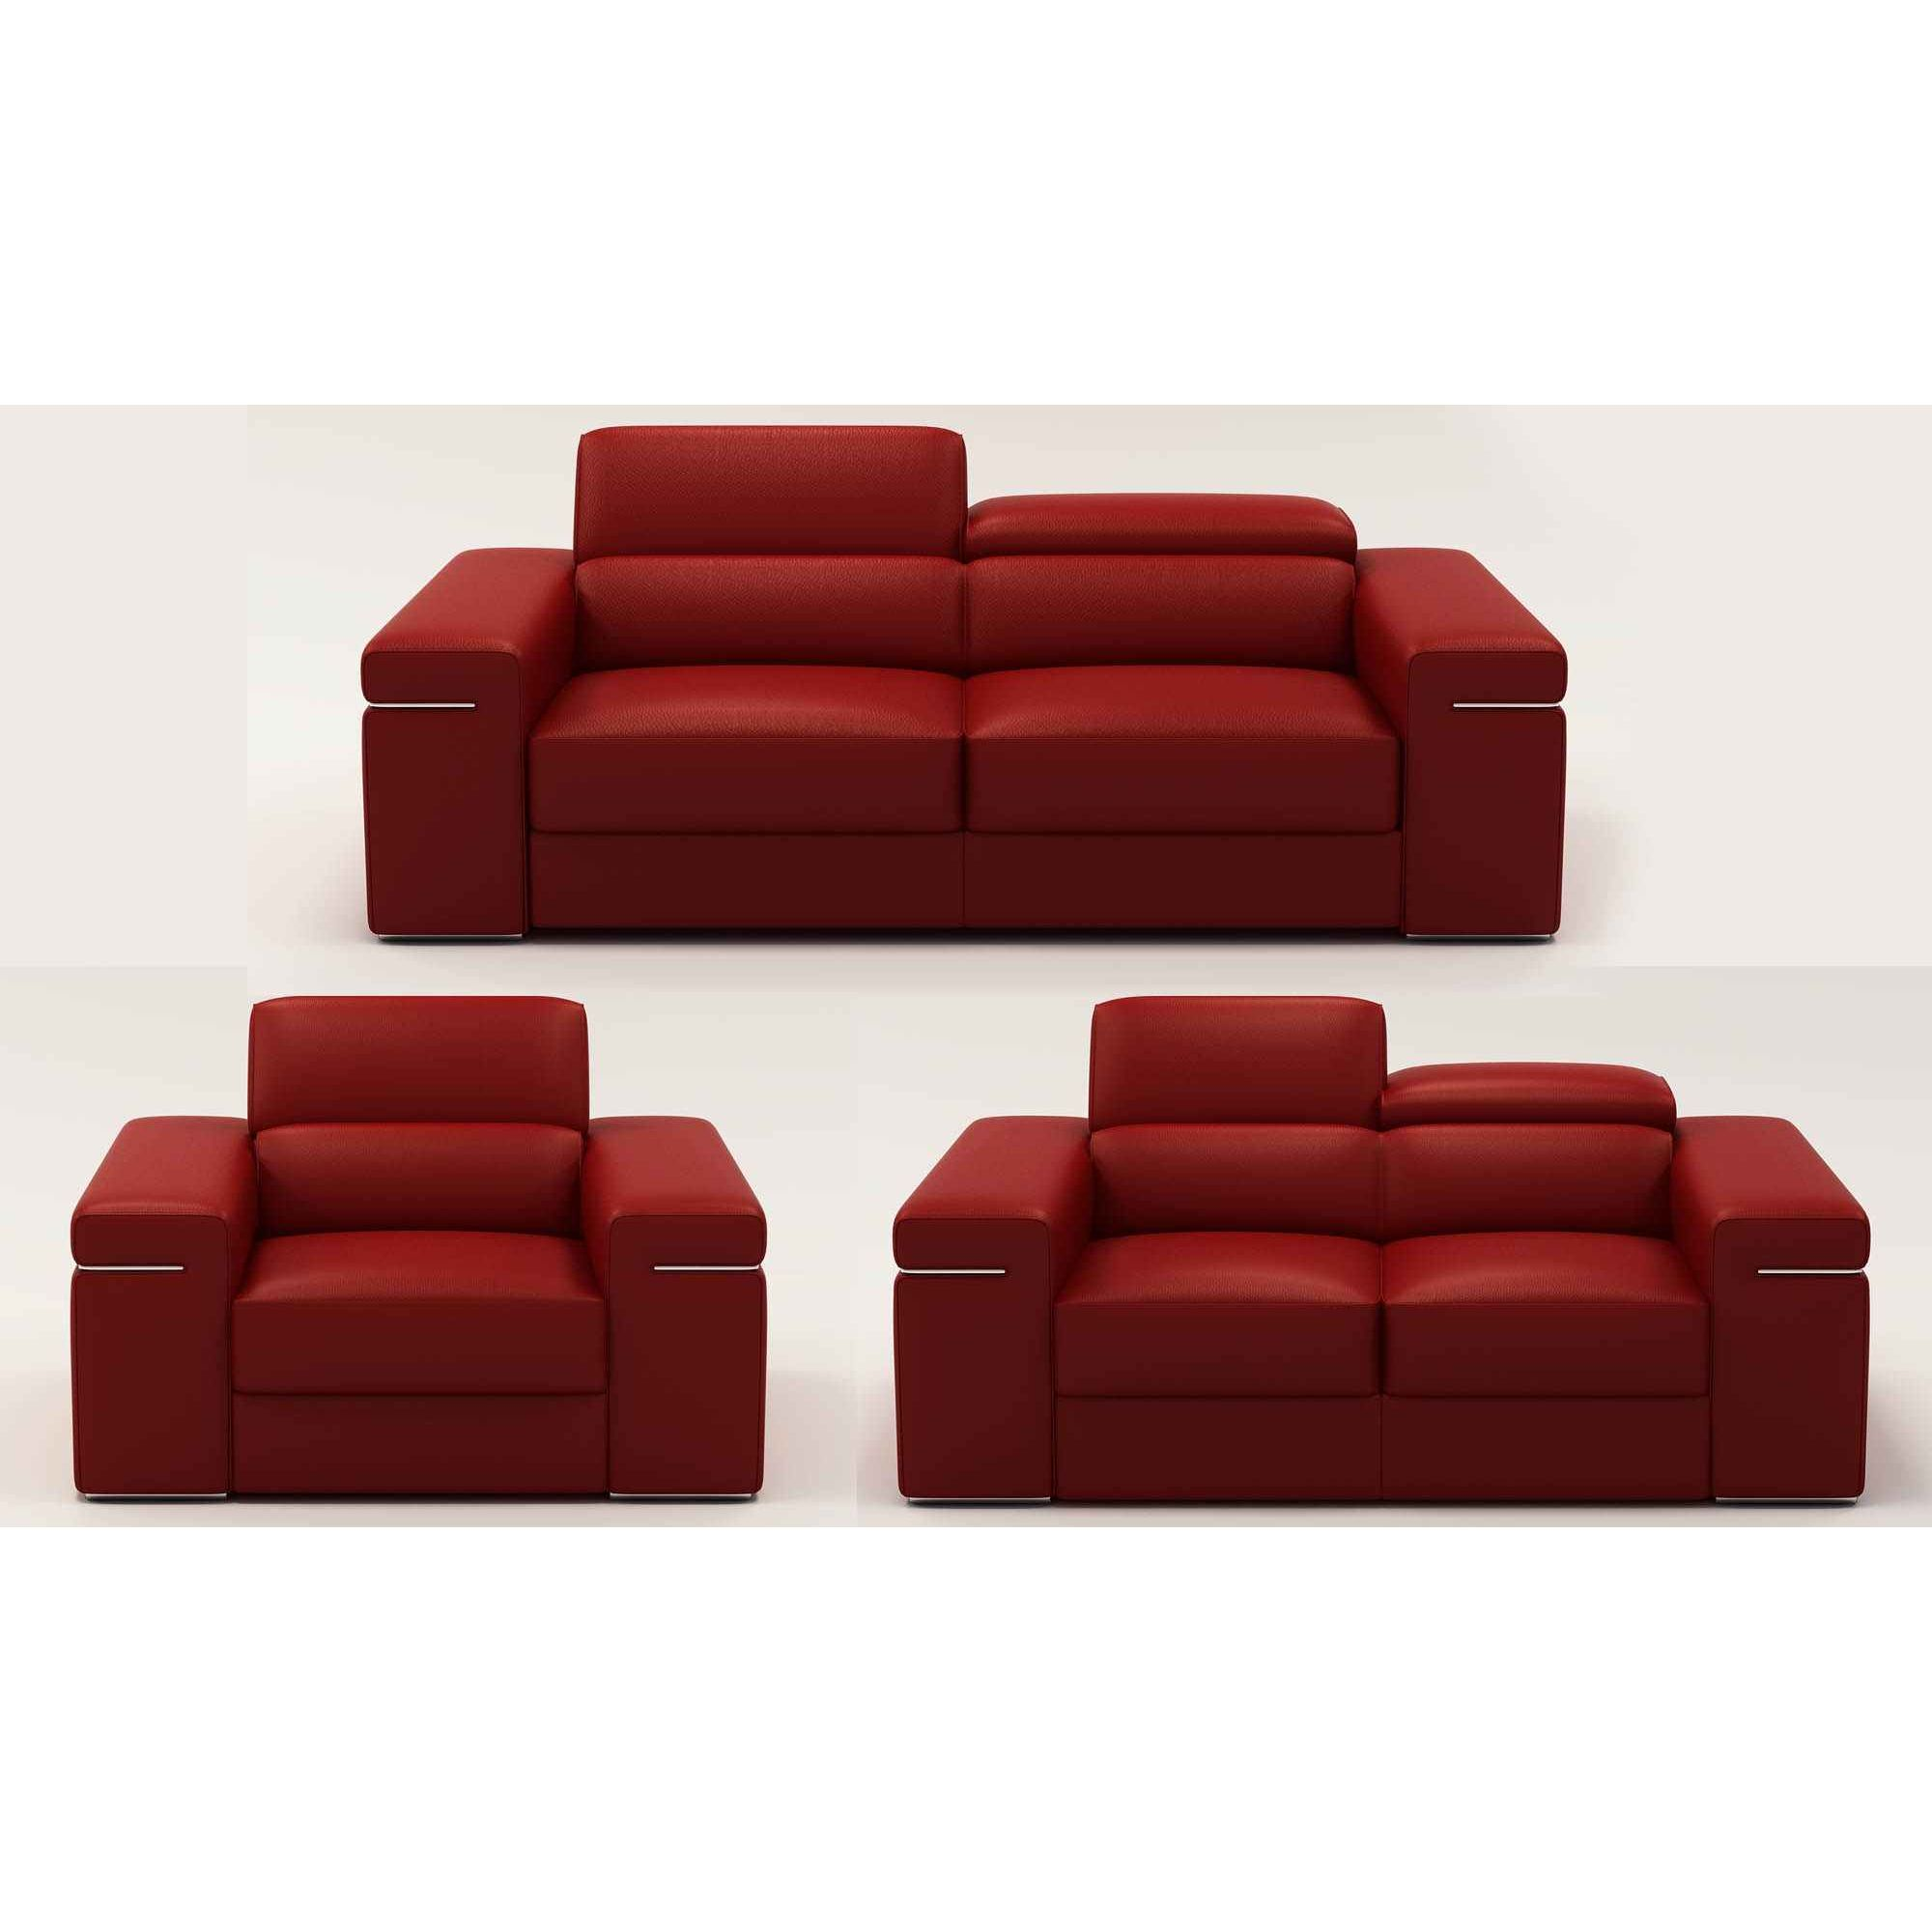 Deco in paris ensemble canape 3 2 1 places en cuir rouge for Canape largeur 140